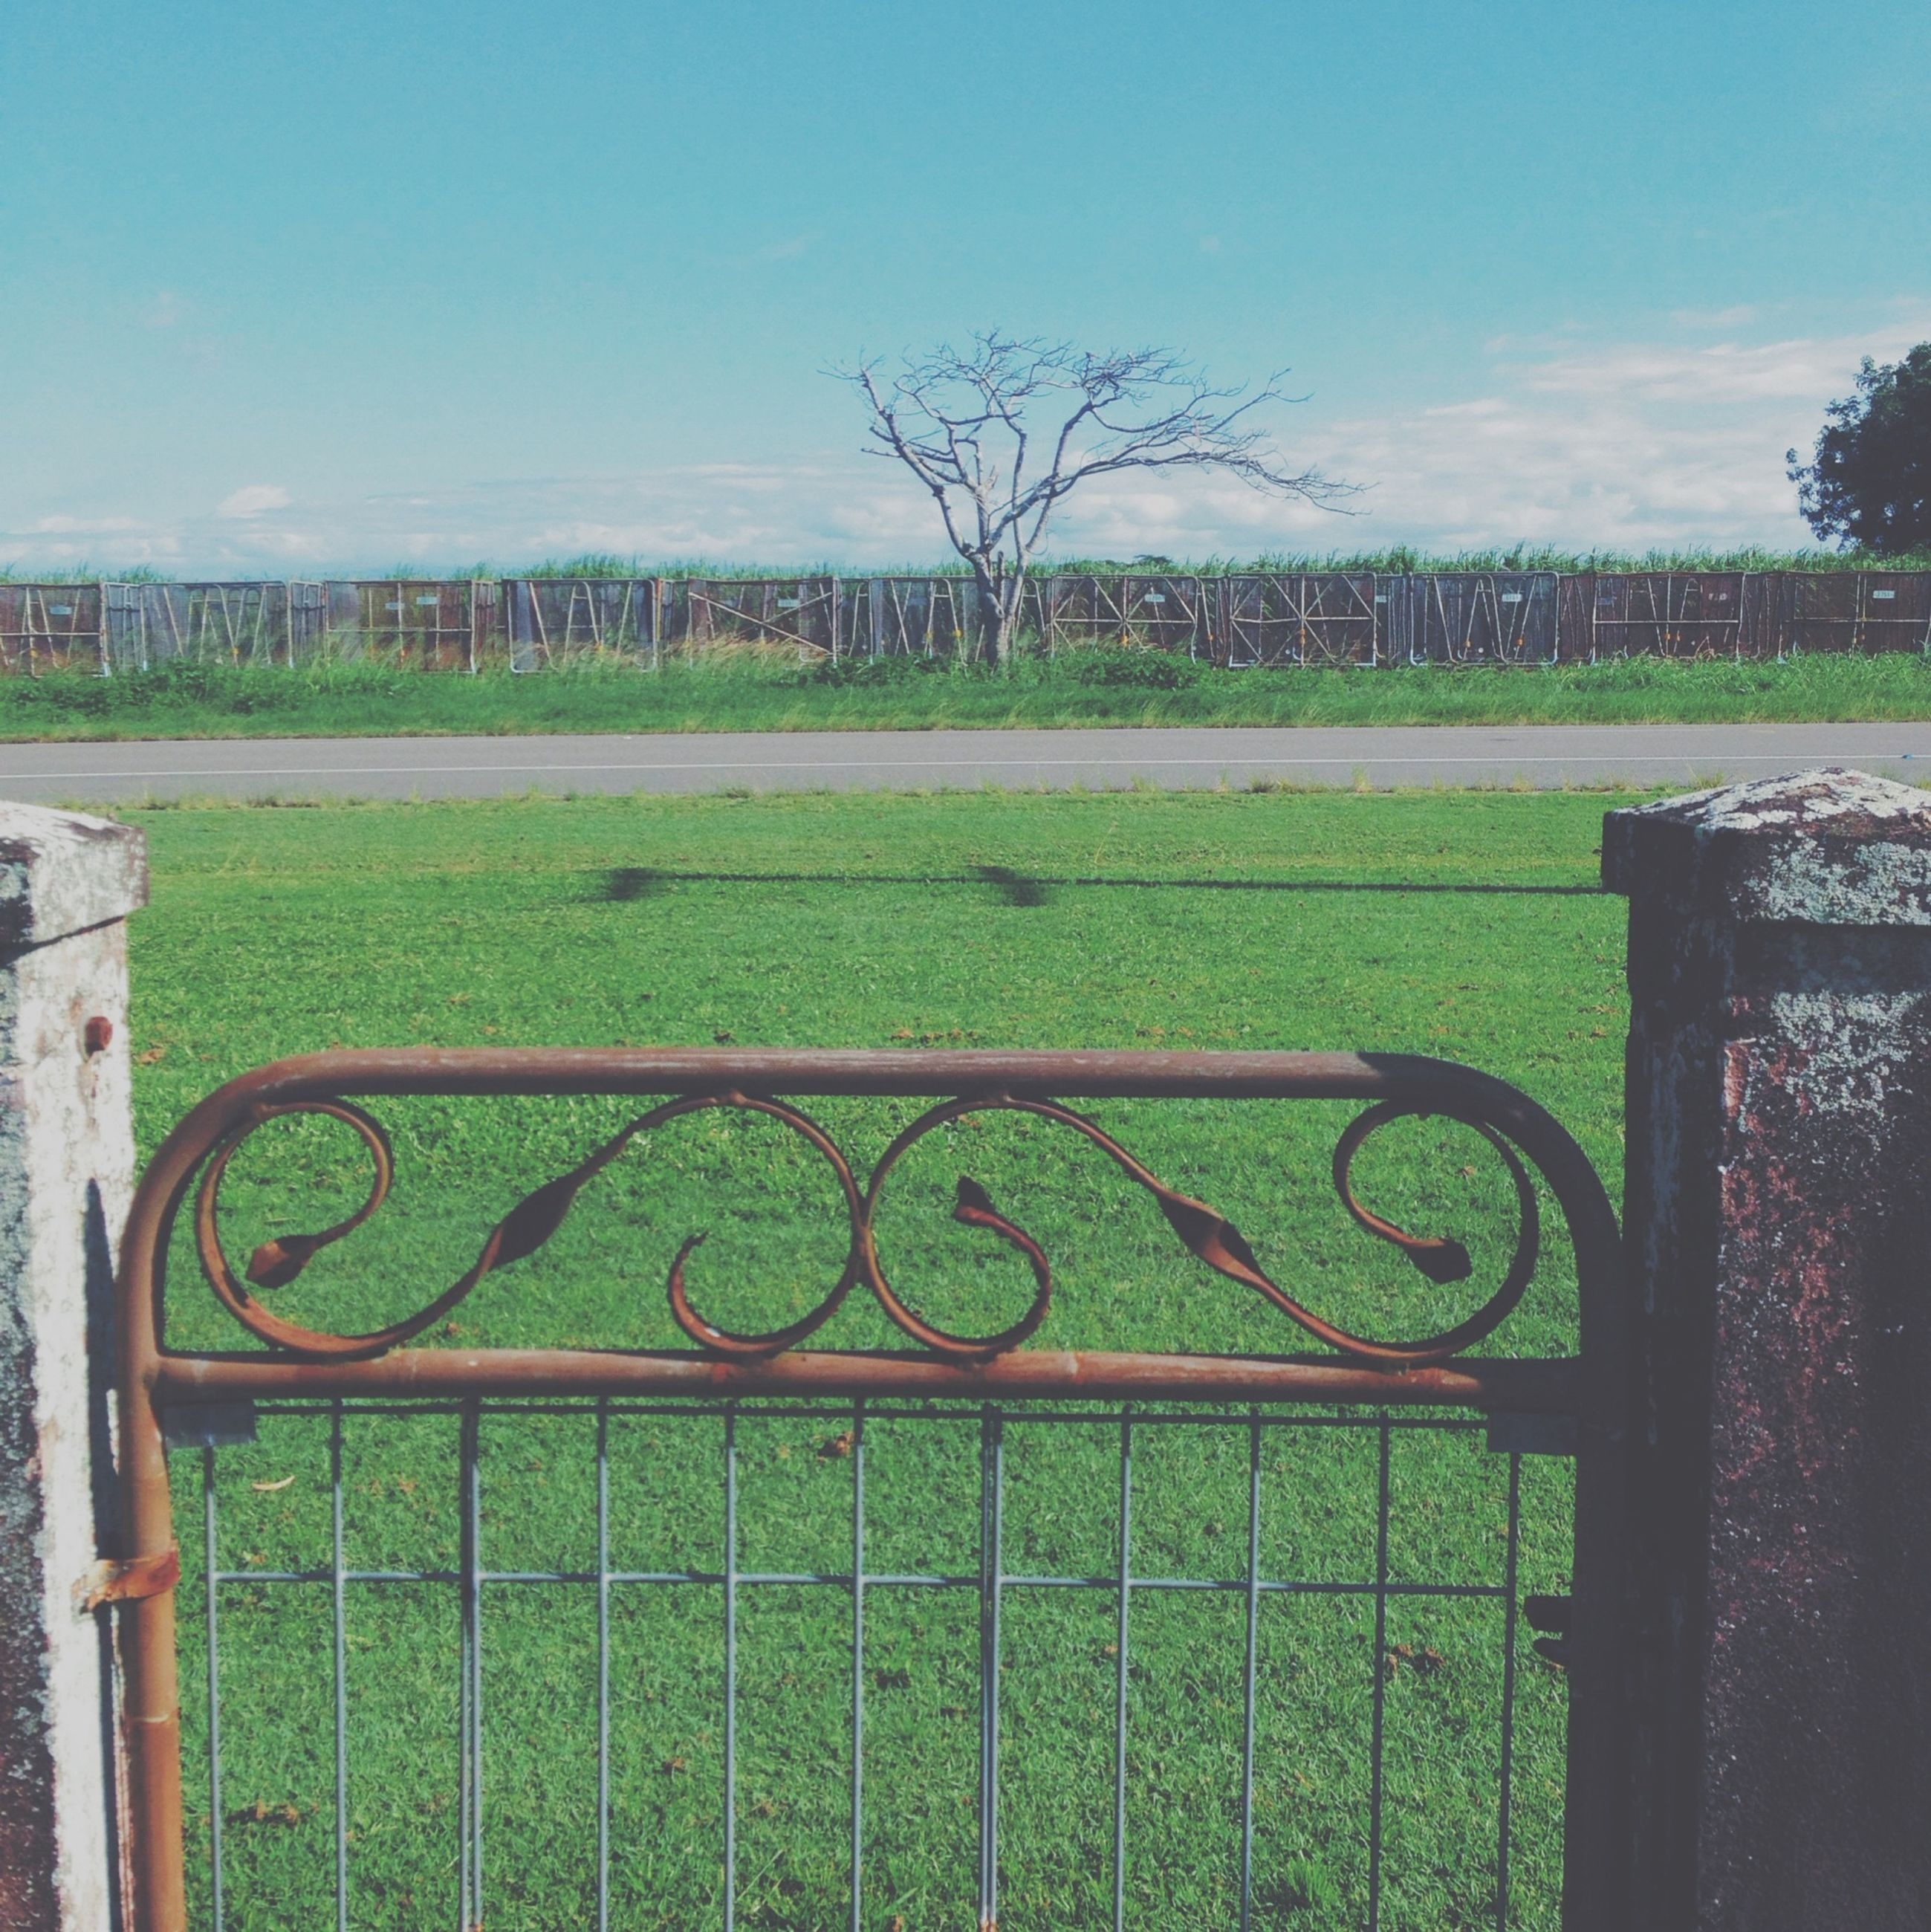 grass, field, fence, tree, green color, landscape, grassy, growth, tranquility, sky, nature, tranquil scene, beauty in nature, protection, plant, metal, day, park - man made space, scenics, safety